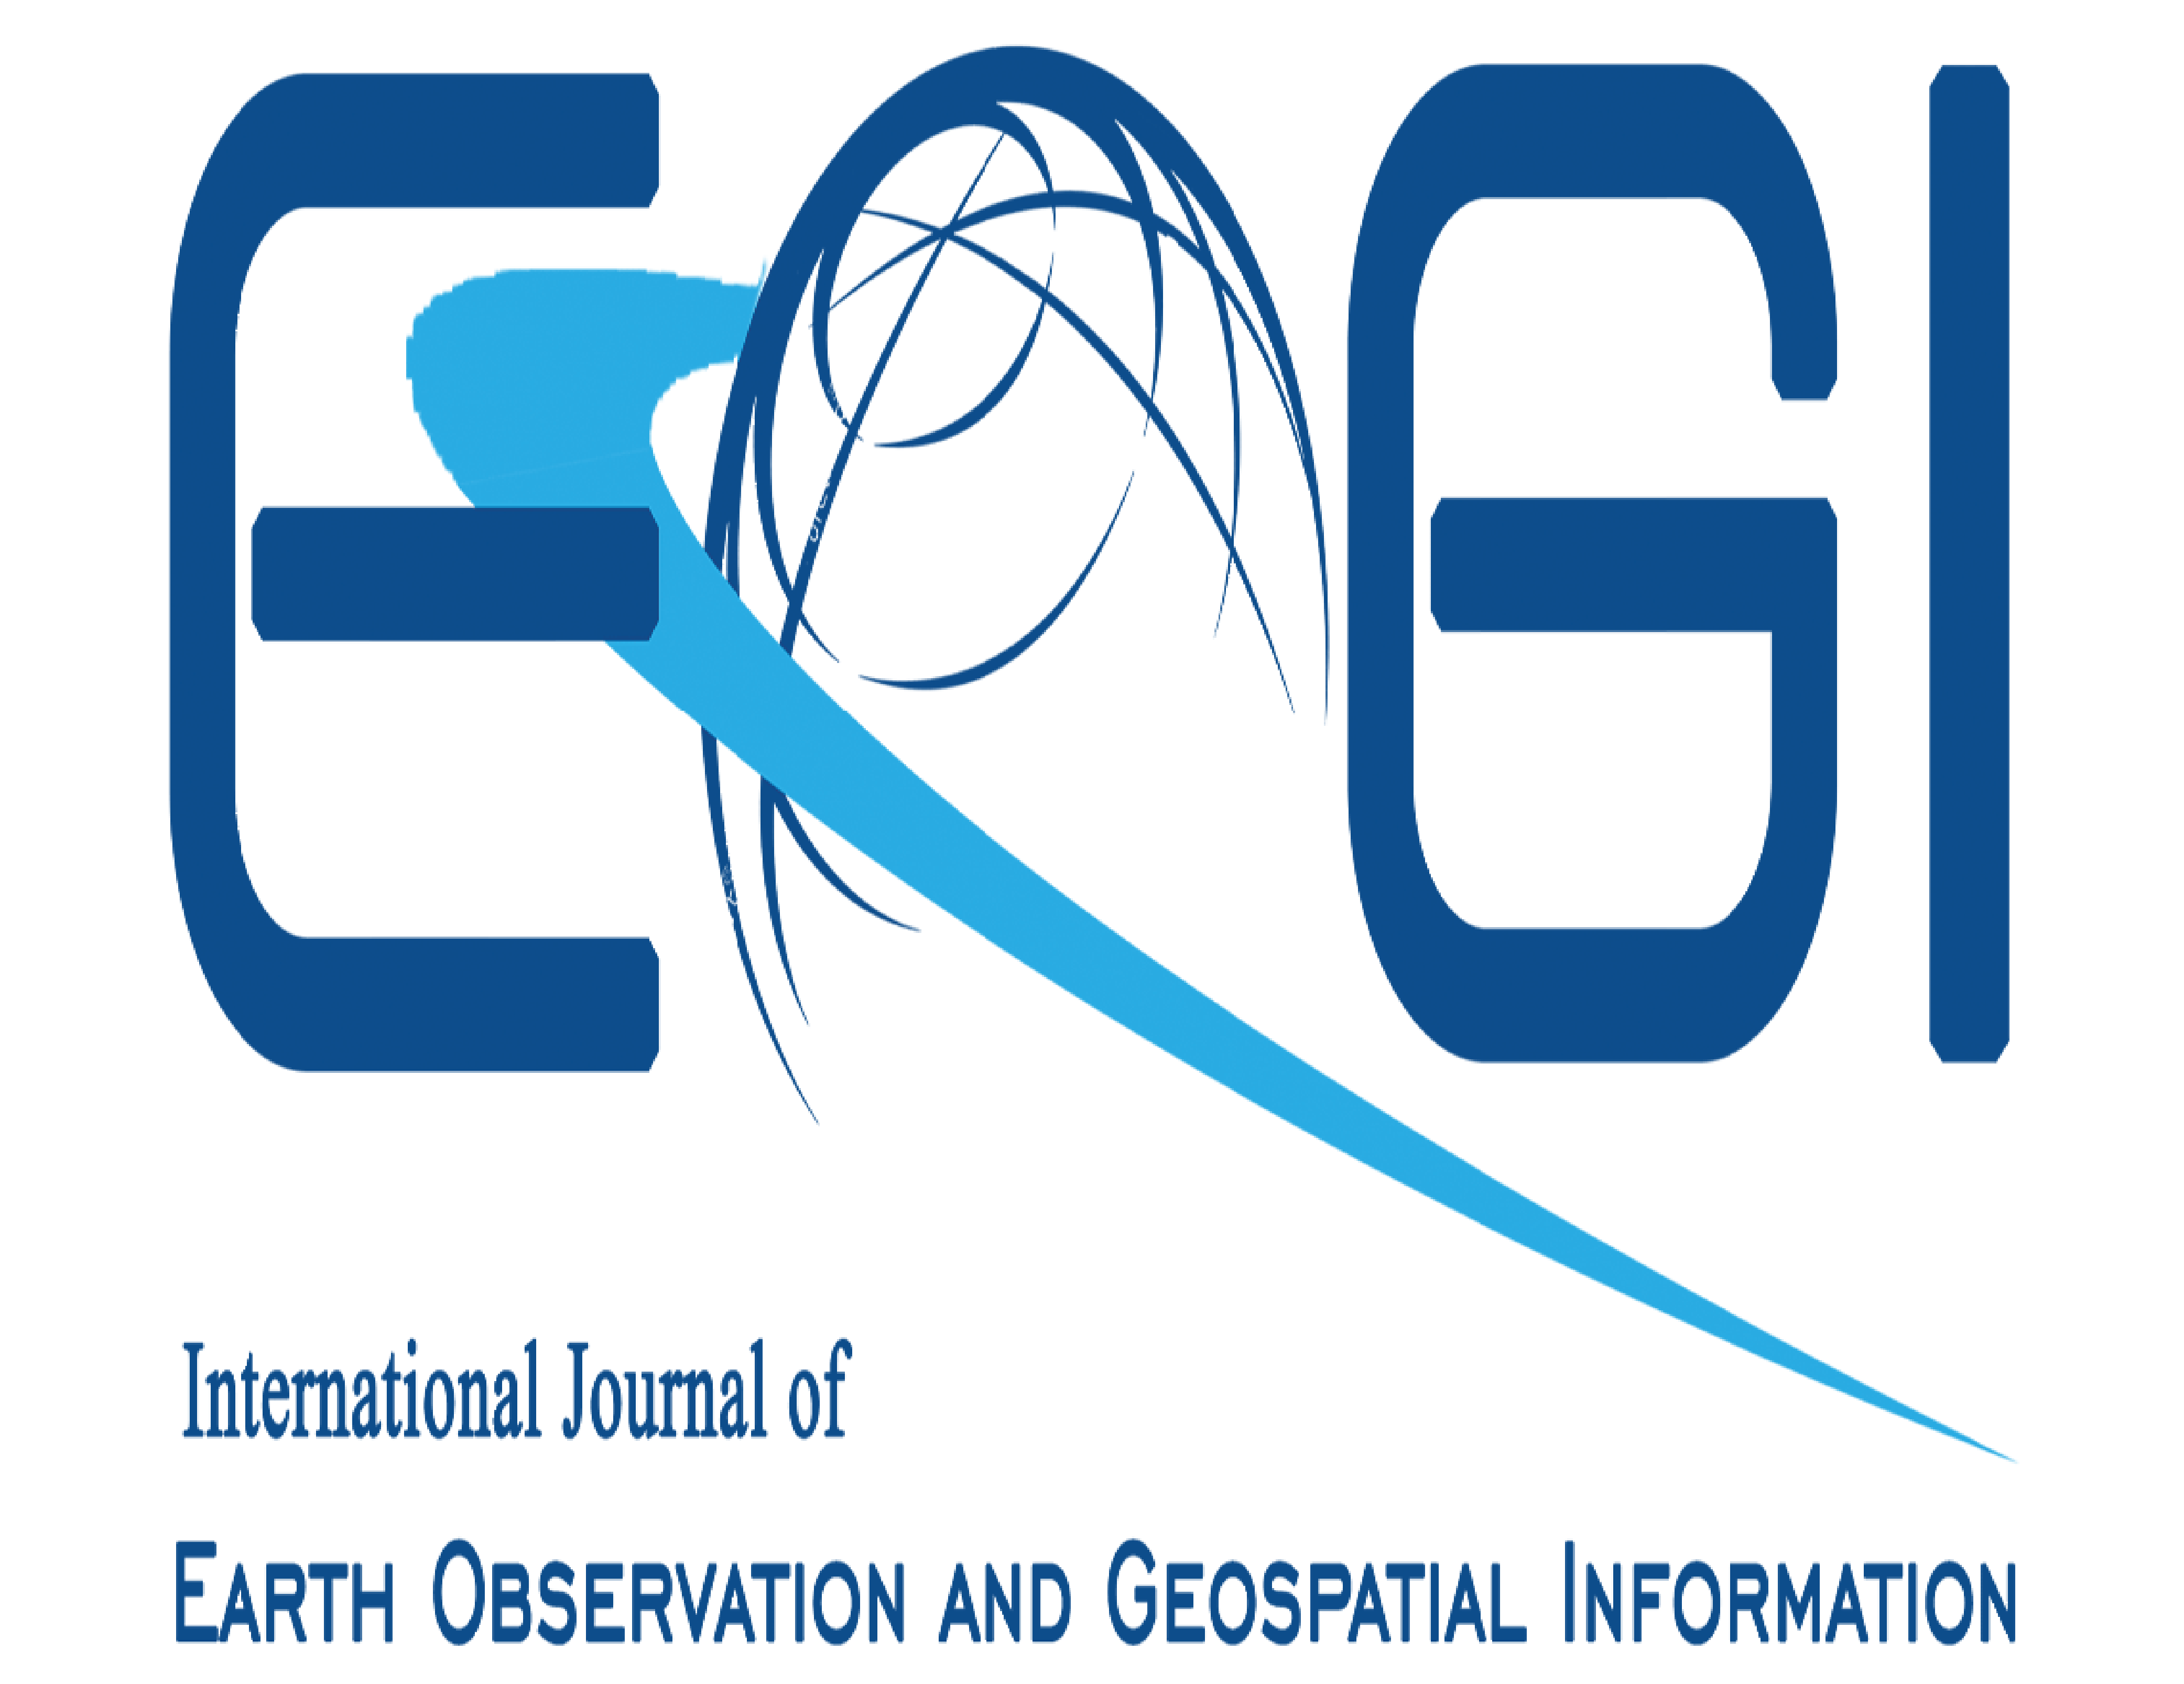 International Journal of Earth Observation and Geospatial Information